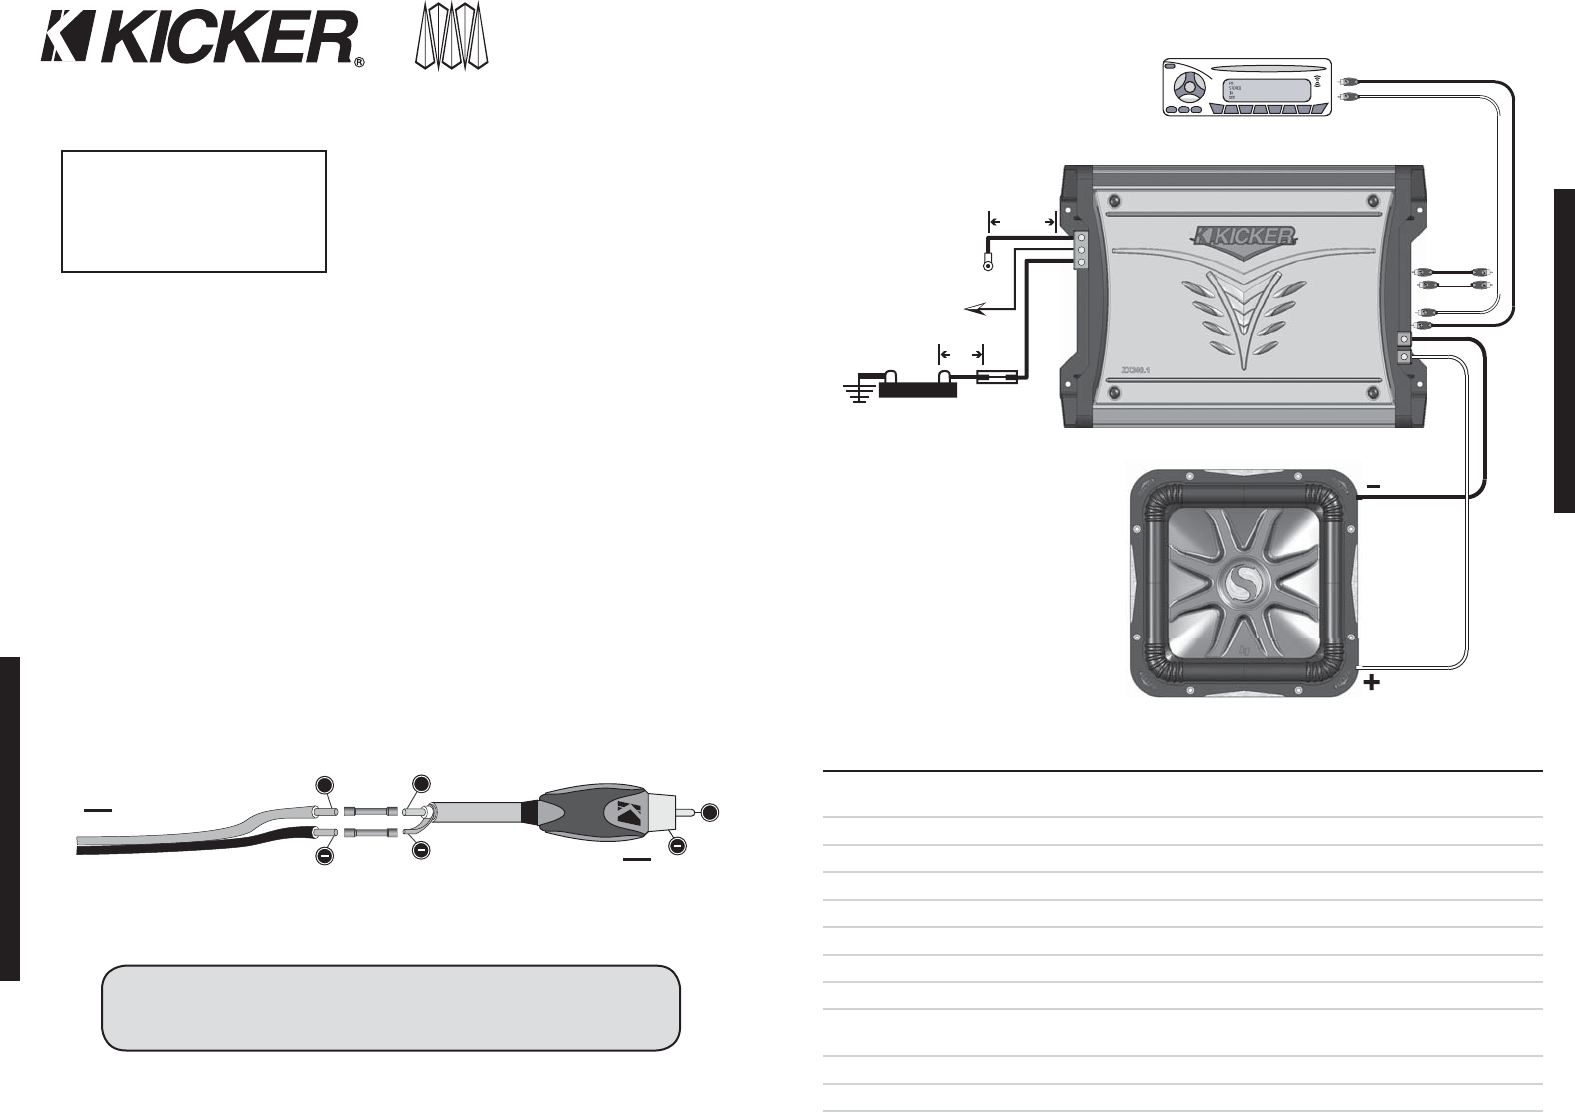 kicker 2008 zx400 1 500 and 750 owners manual zx 400 f01 Kicker Car Amps